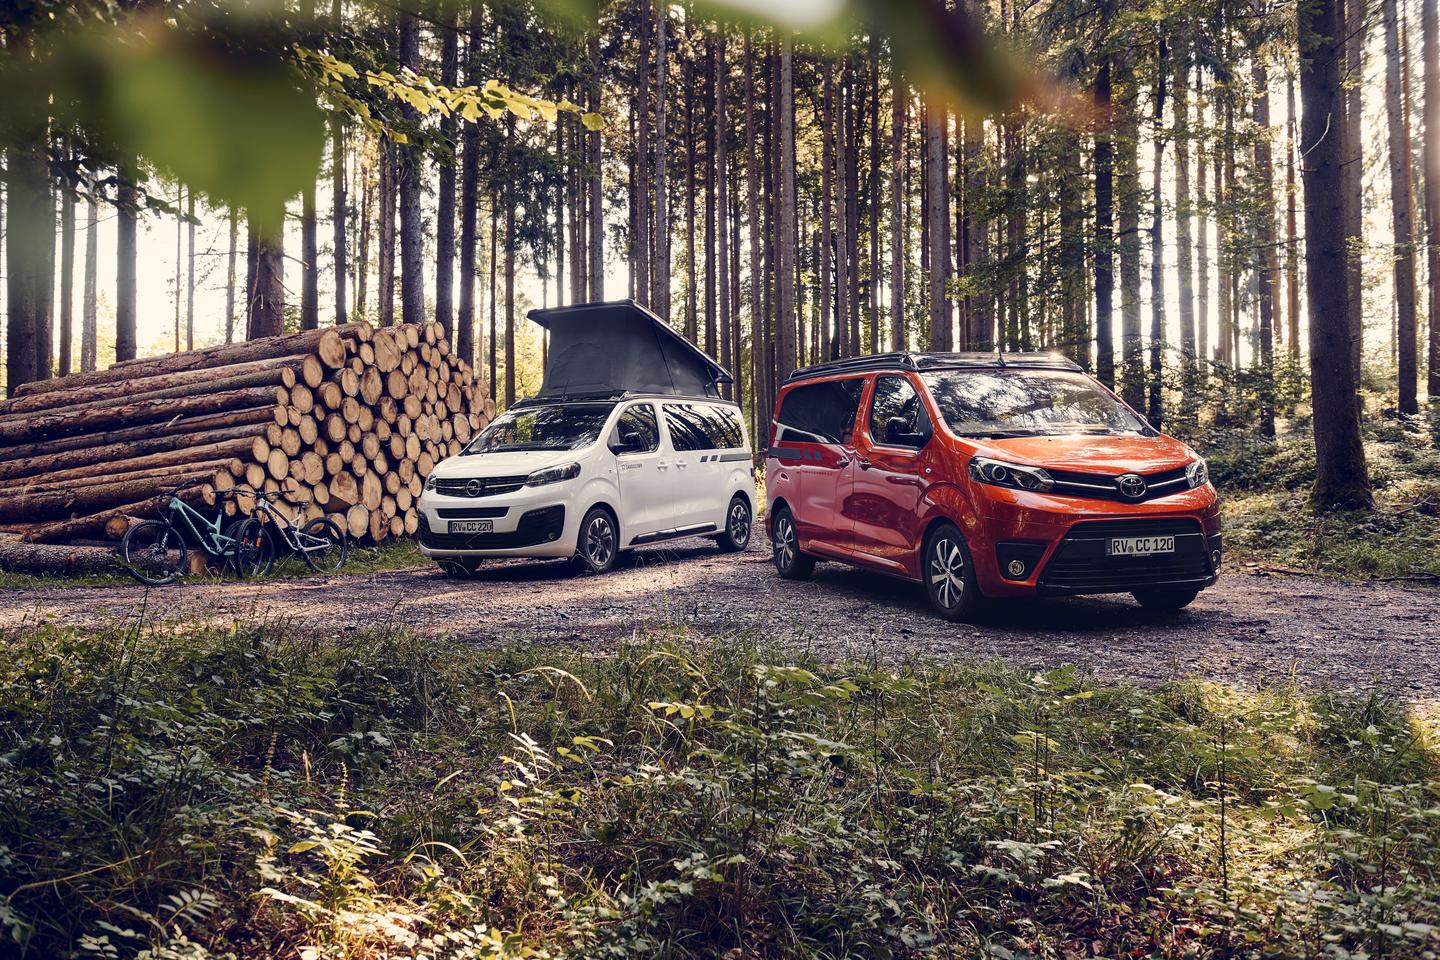 The new Crosscamp Lite comes built on sibling vans: the Toyota Proace Verso and Opel Zafira Life